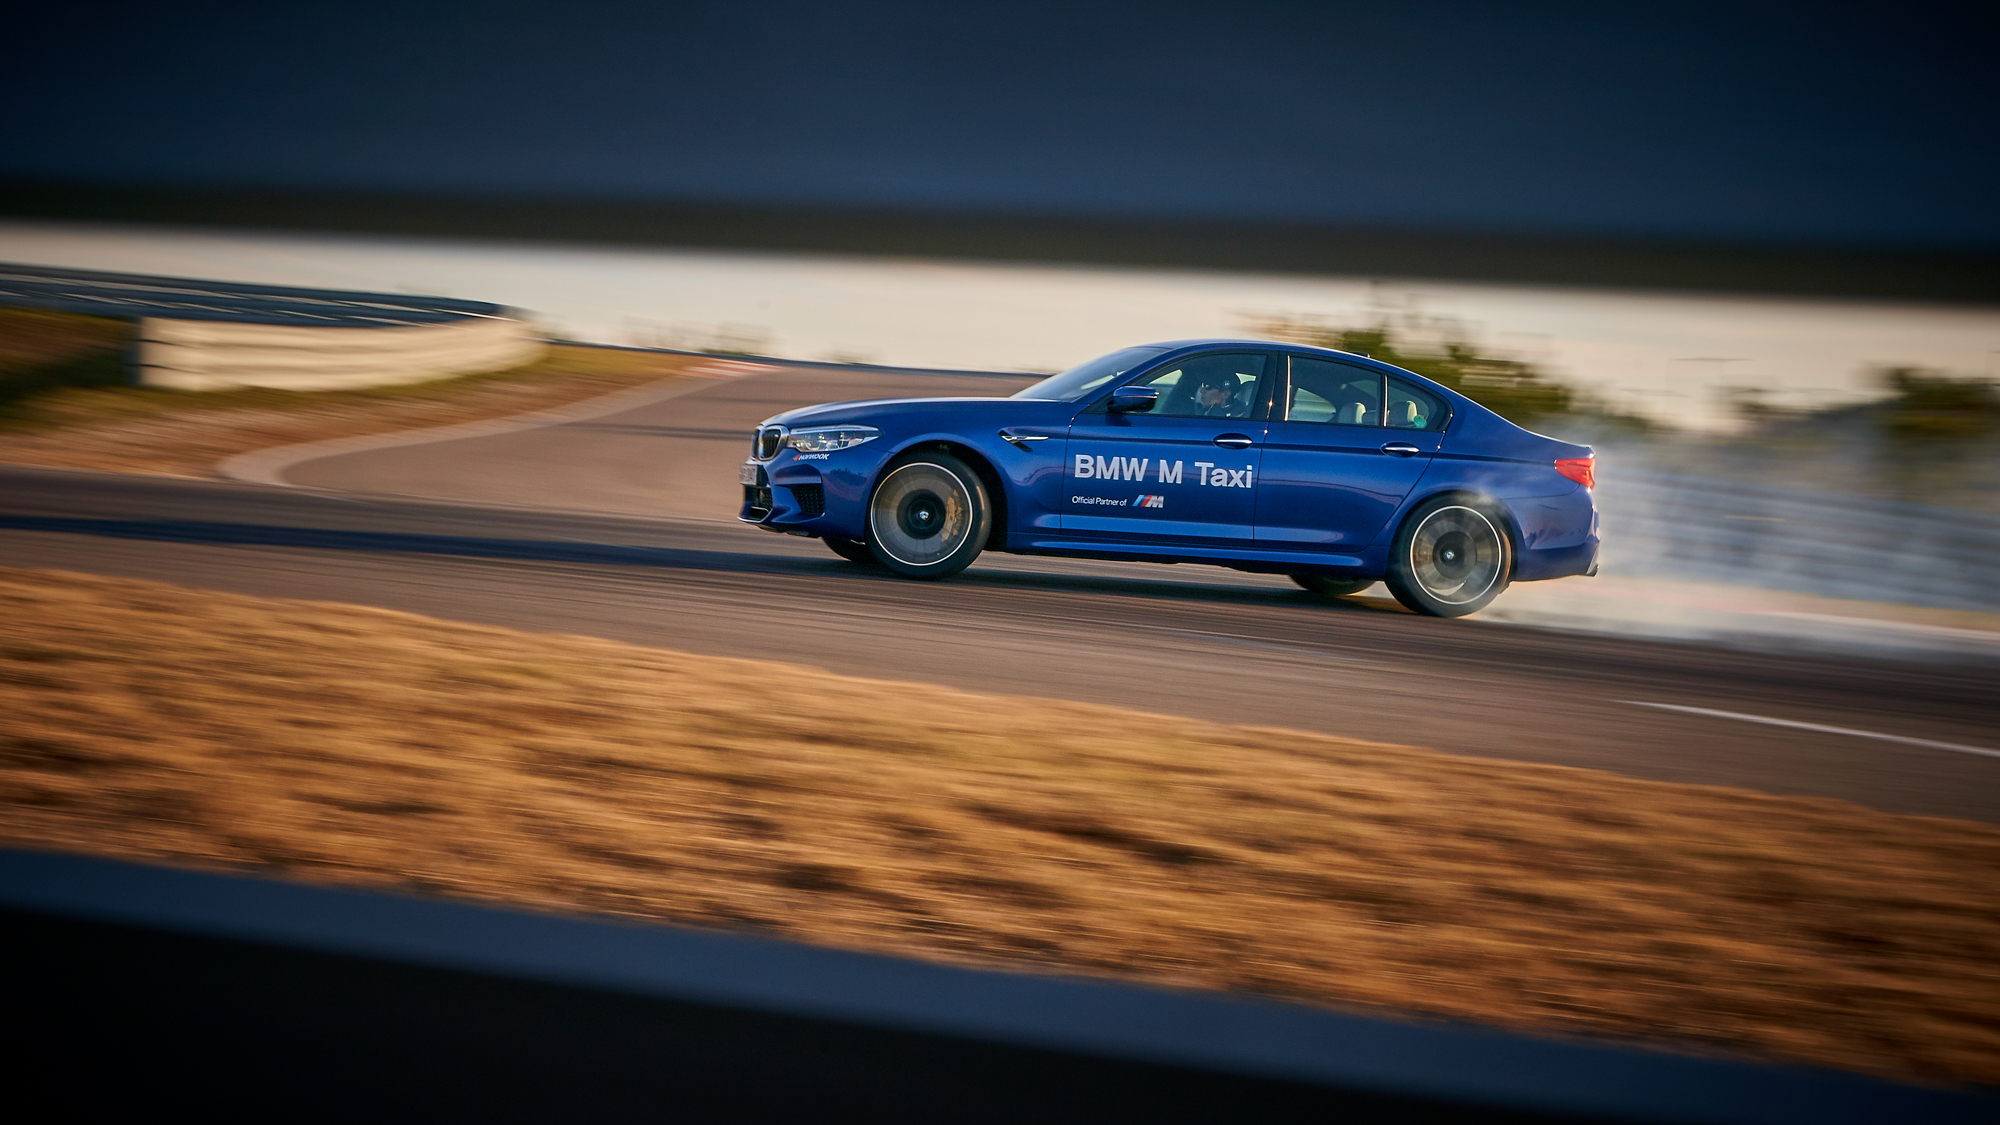 2018. BMW F90 M5 (Driving Center)